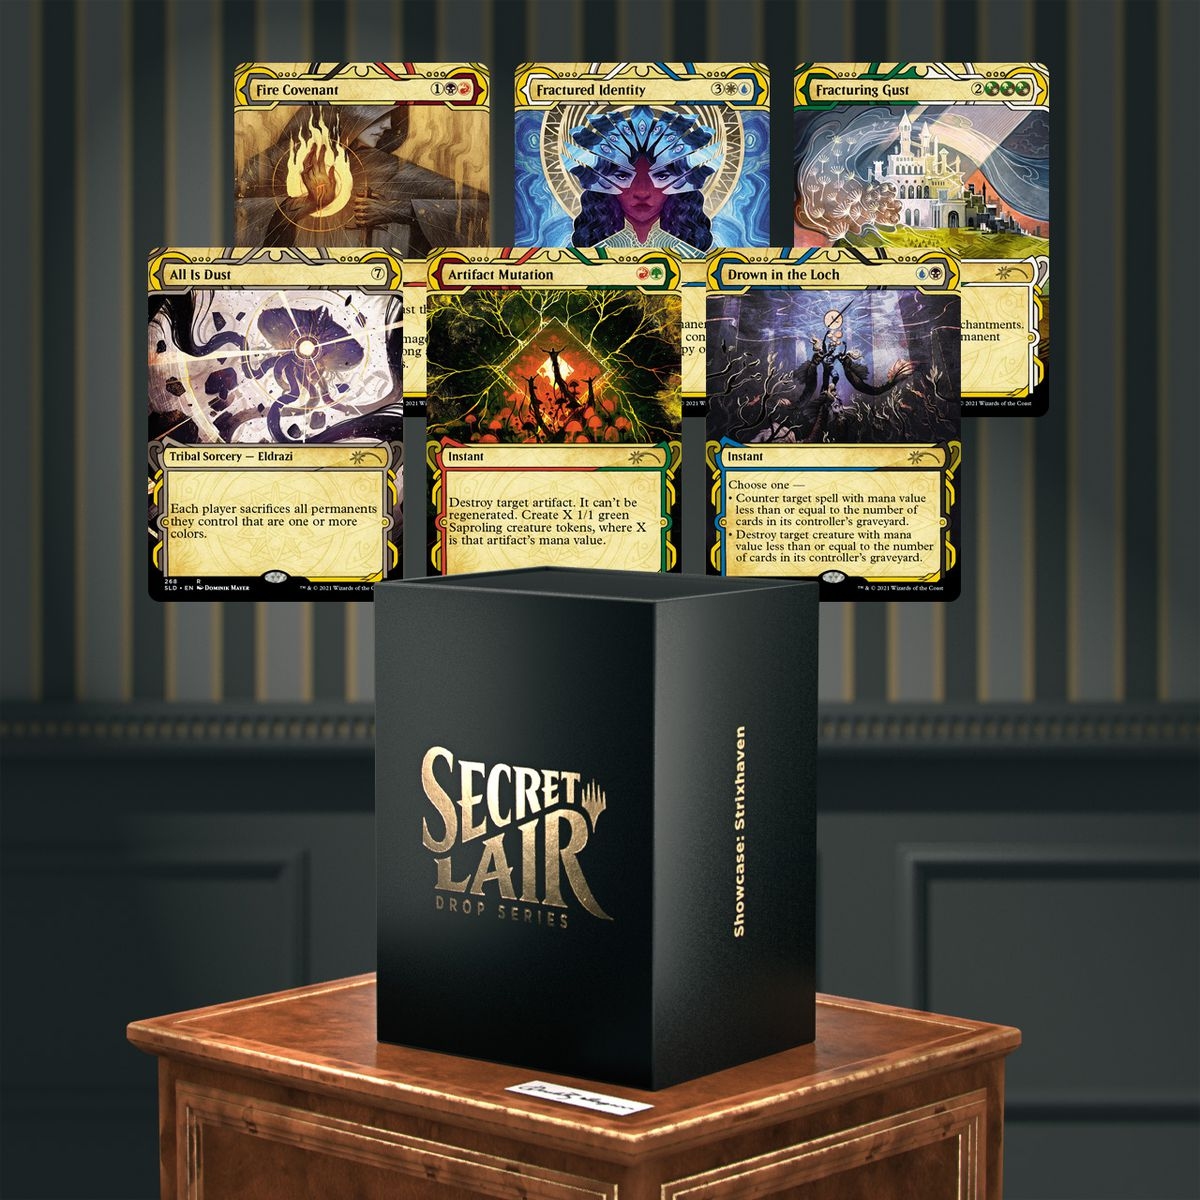 All six Strixhaven cards shown on a parlor wall, with a gilded Secret Lair box shown below.